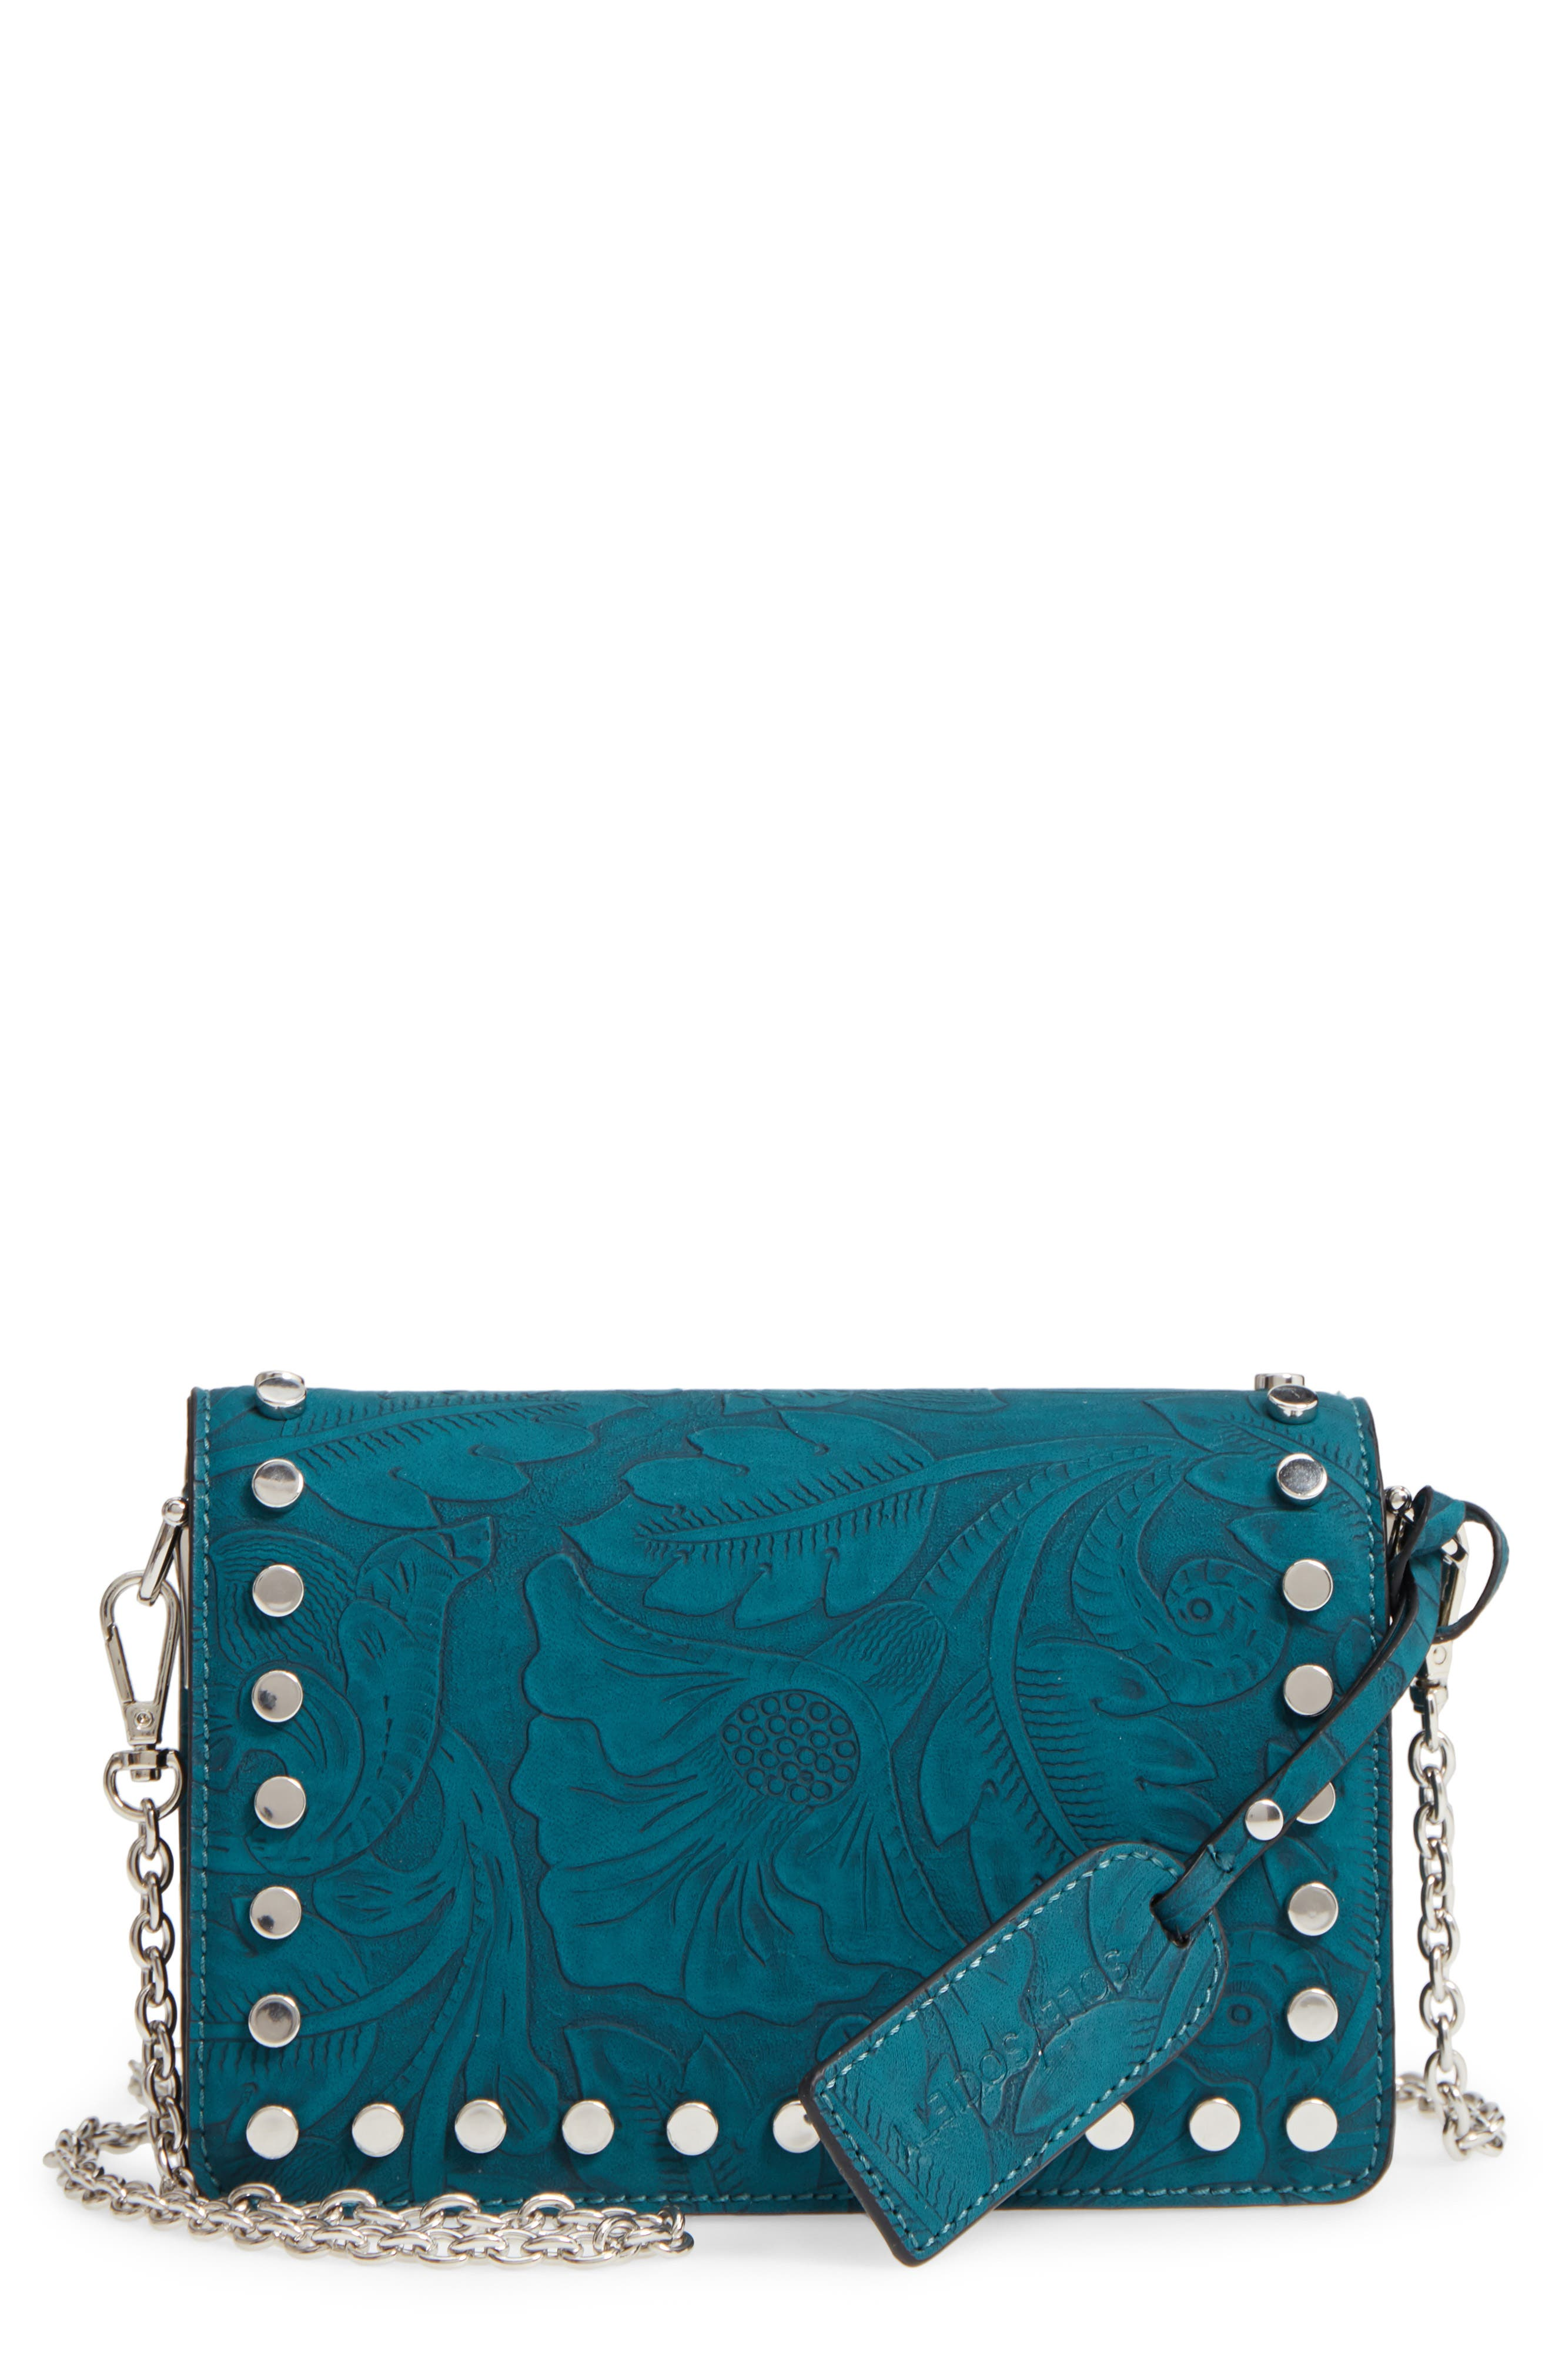 Hawna Faux Leather Crossbody,                         Main,                         color, Teal